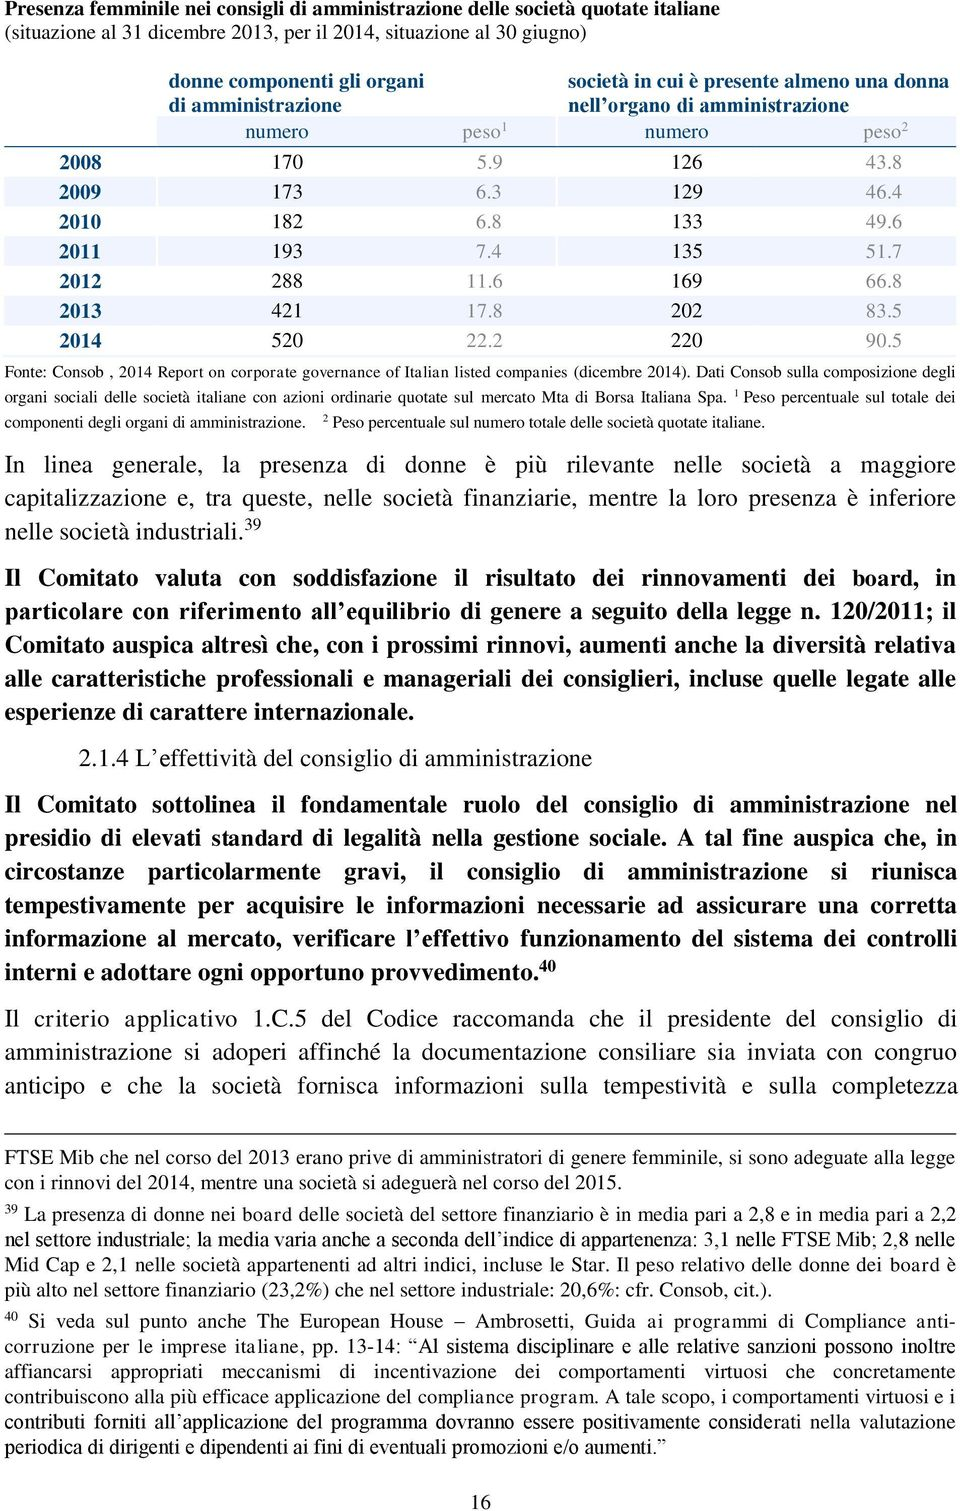 7 2012 288 11.6 169 66.8 2013 421 17.8 202 83.5 2014 520 22.2 220 90.5 Fonte: Consob, 2014 Report on corporate governance of Italian listed companies (dicembre 2014).